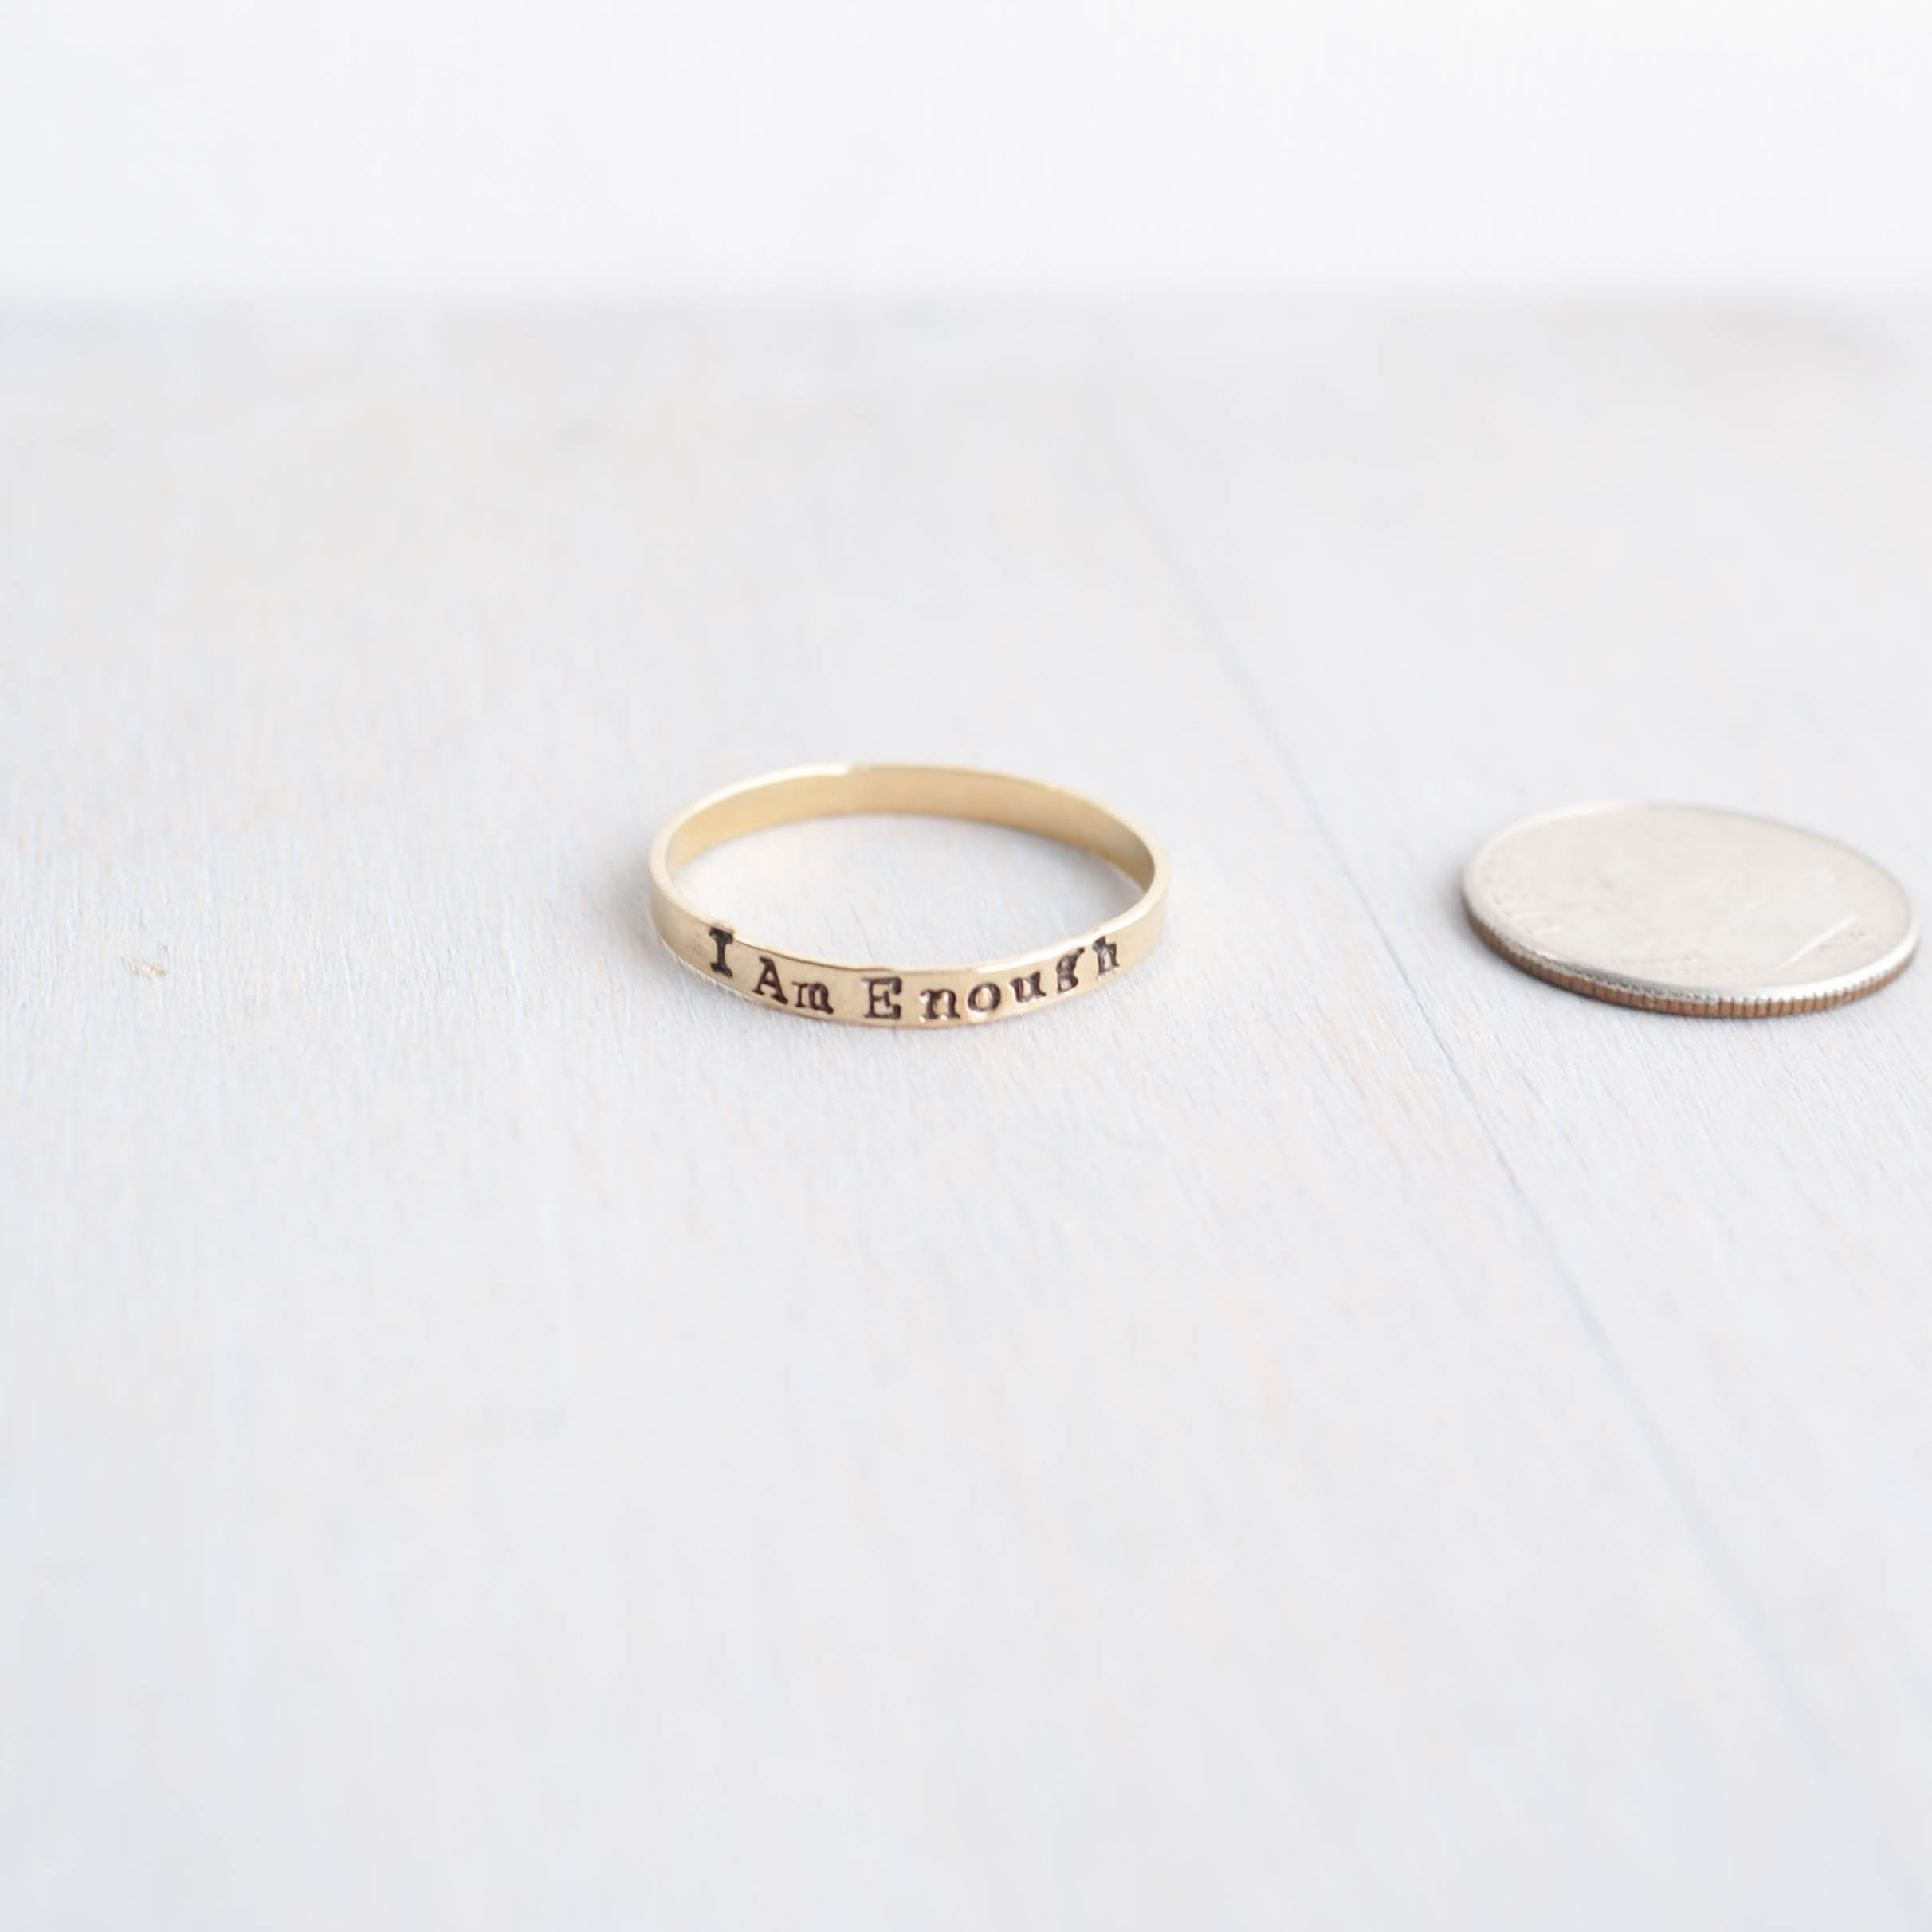 I am Enough Empowerment Ring in Gold-Filled